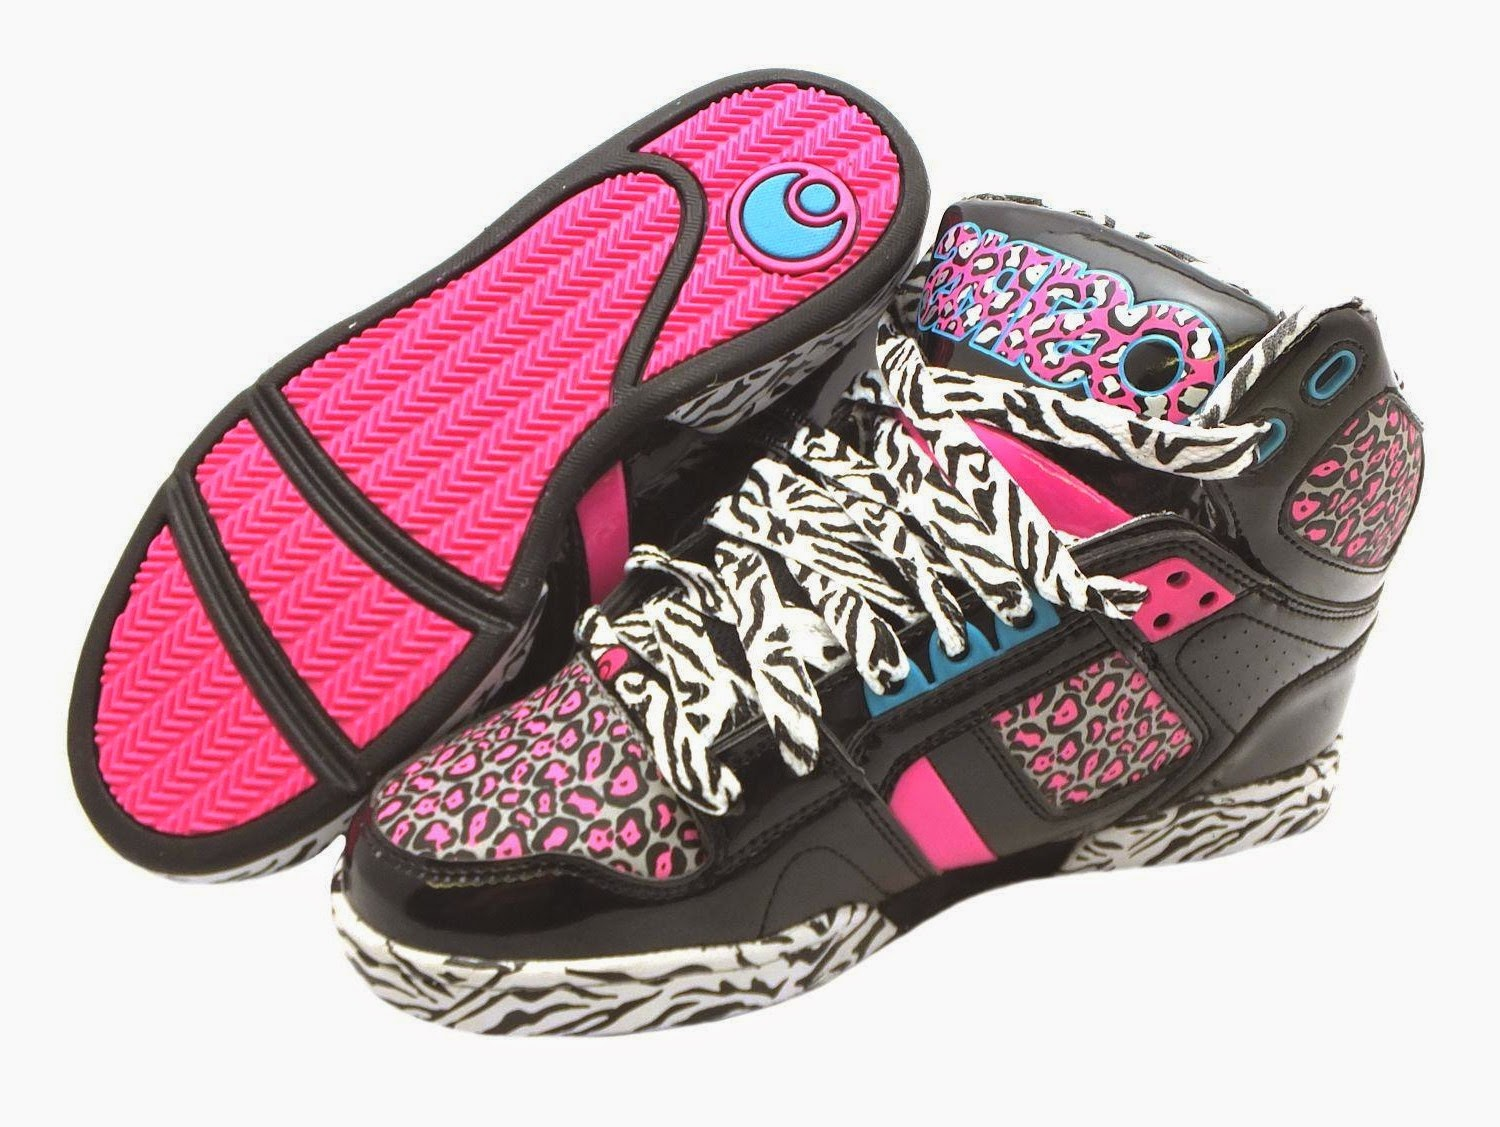 Best Girls Makeovers Wallpaper Adidas High Top Shoes For Girls Purple Viewing Gallery